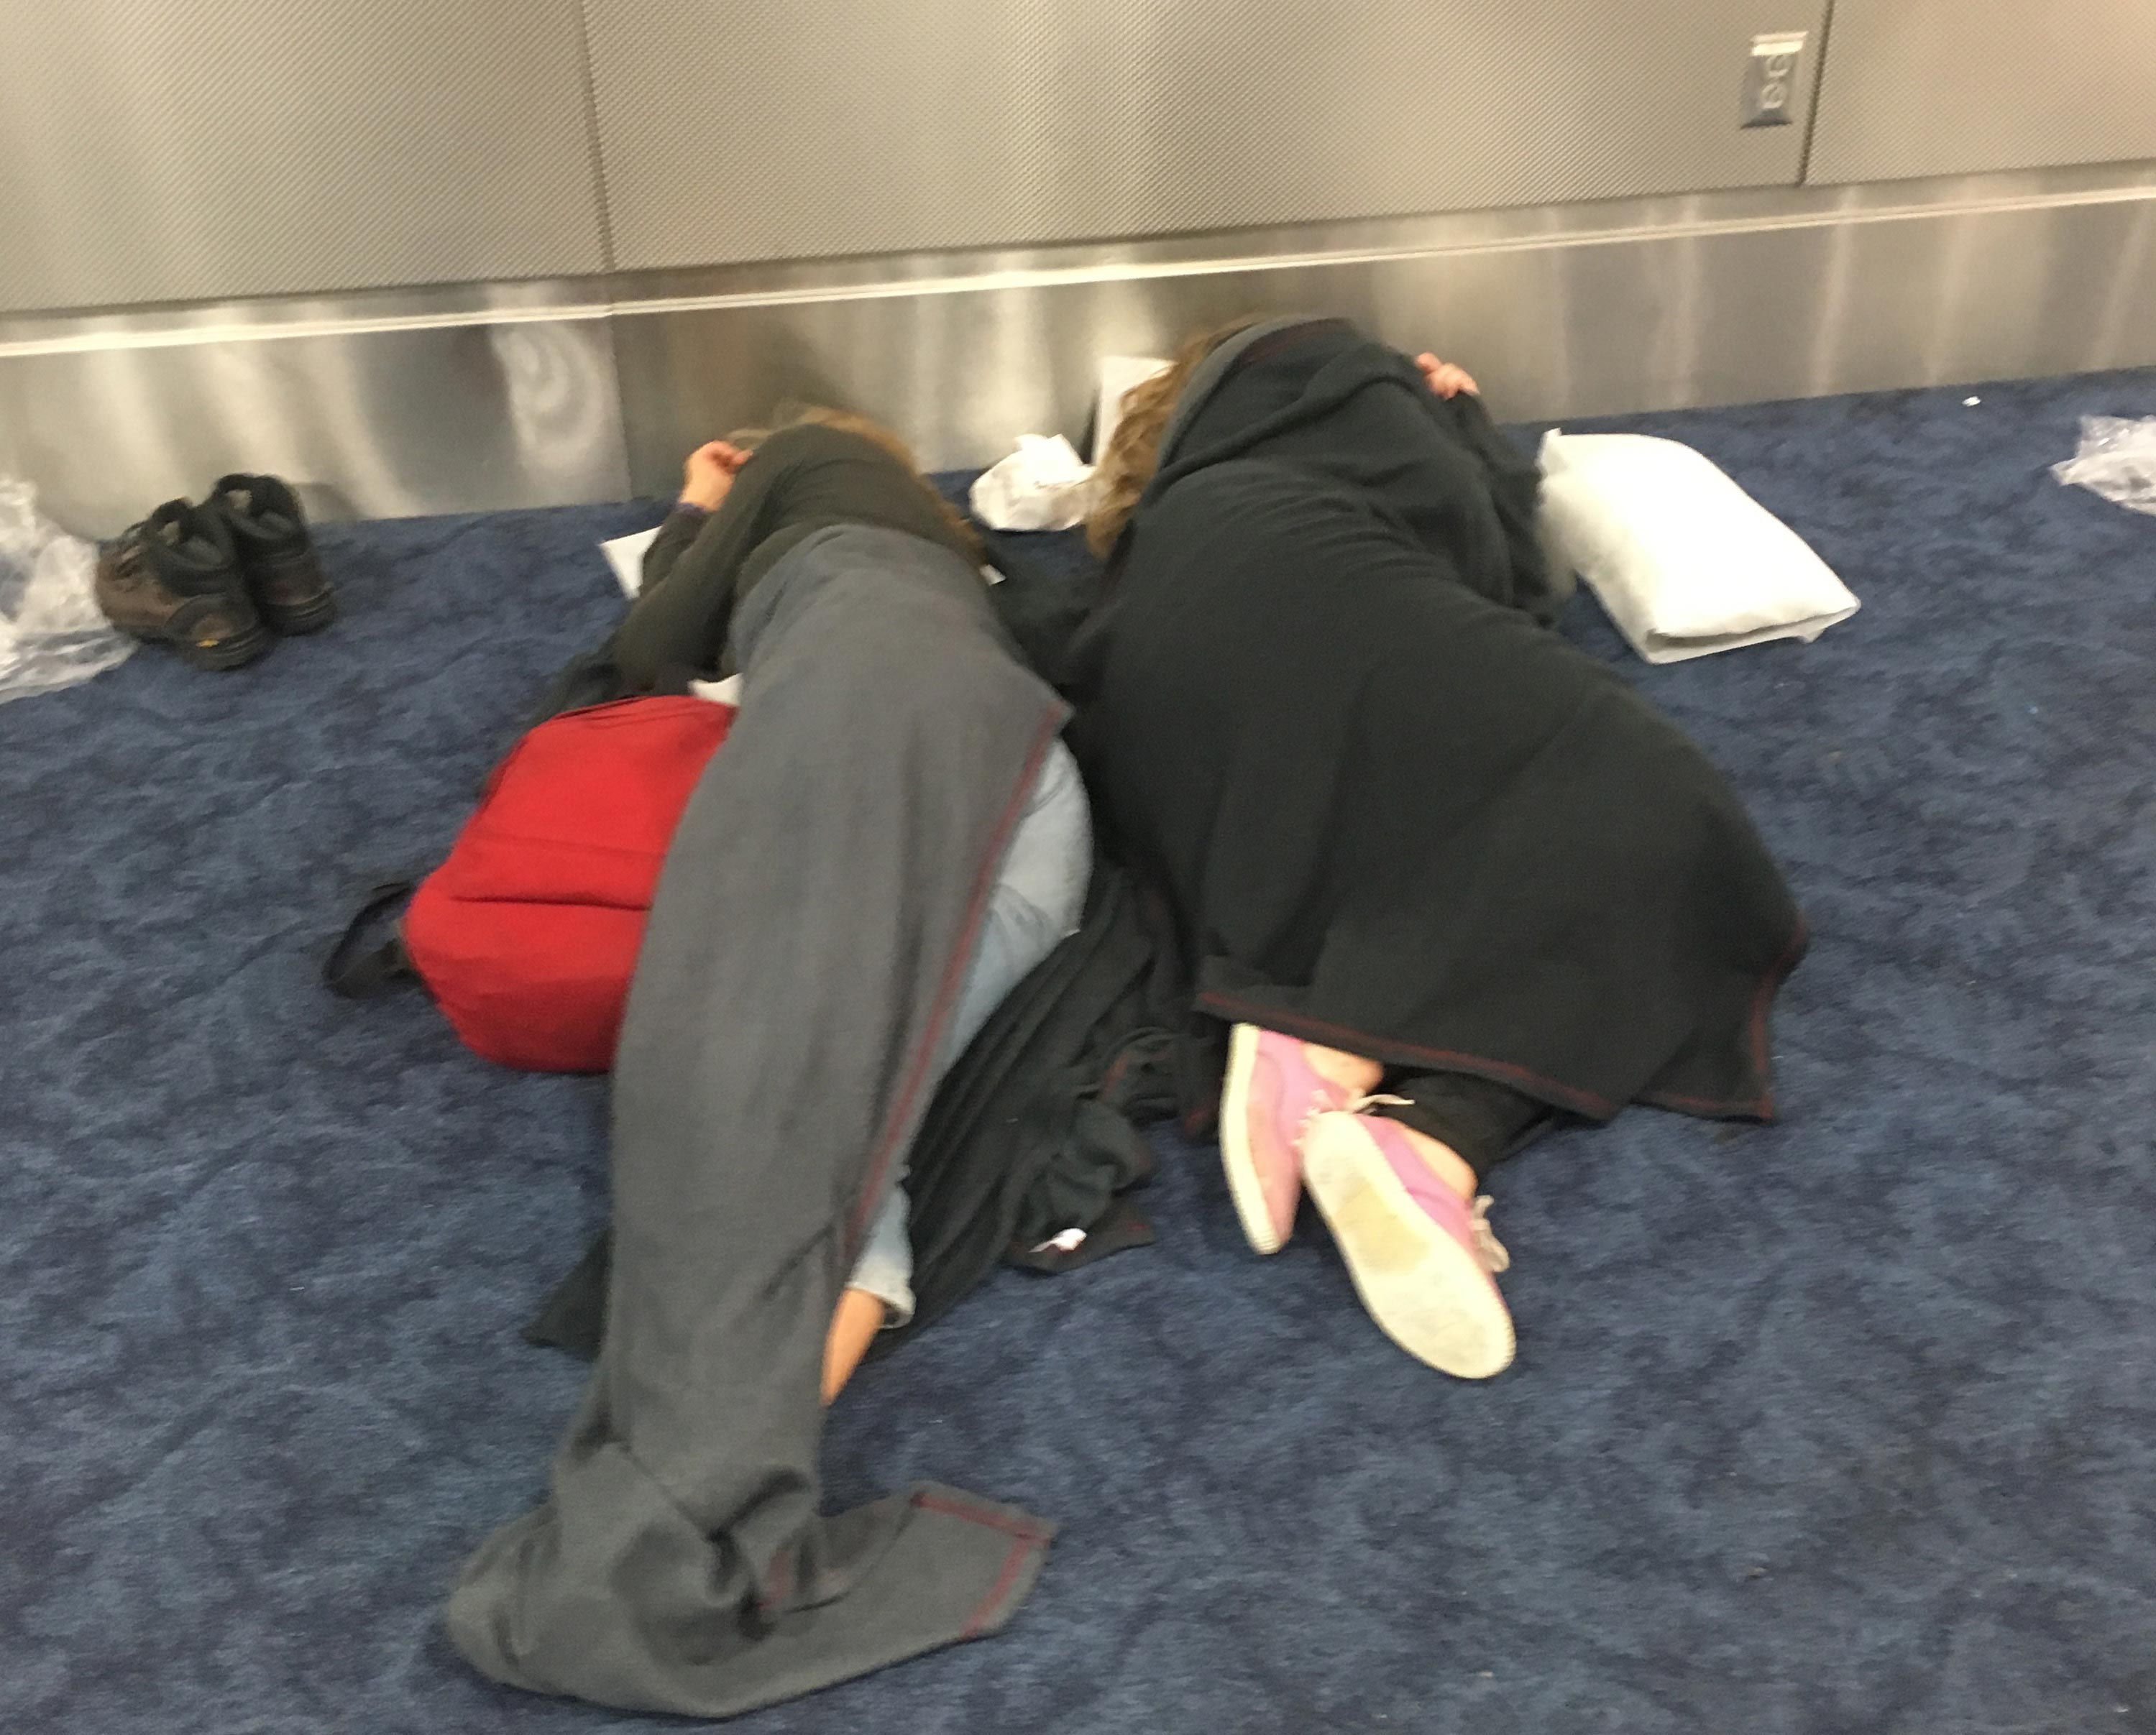 American Airlines delayed flights